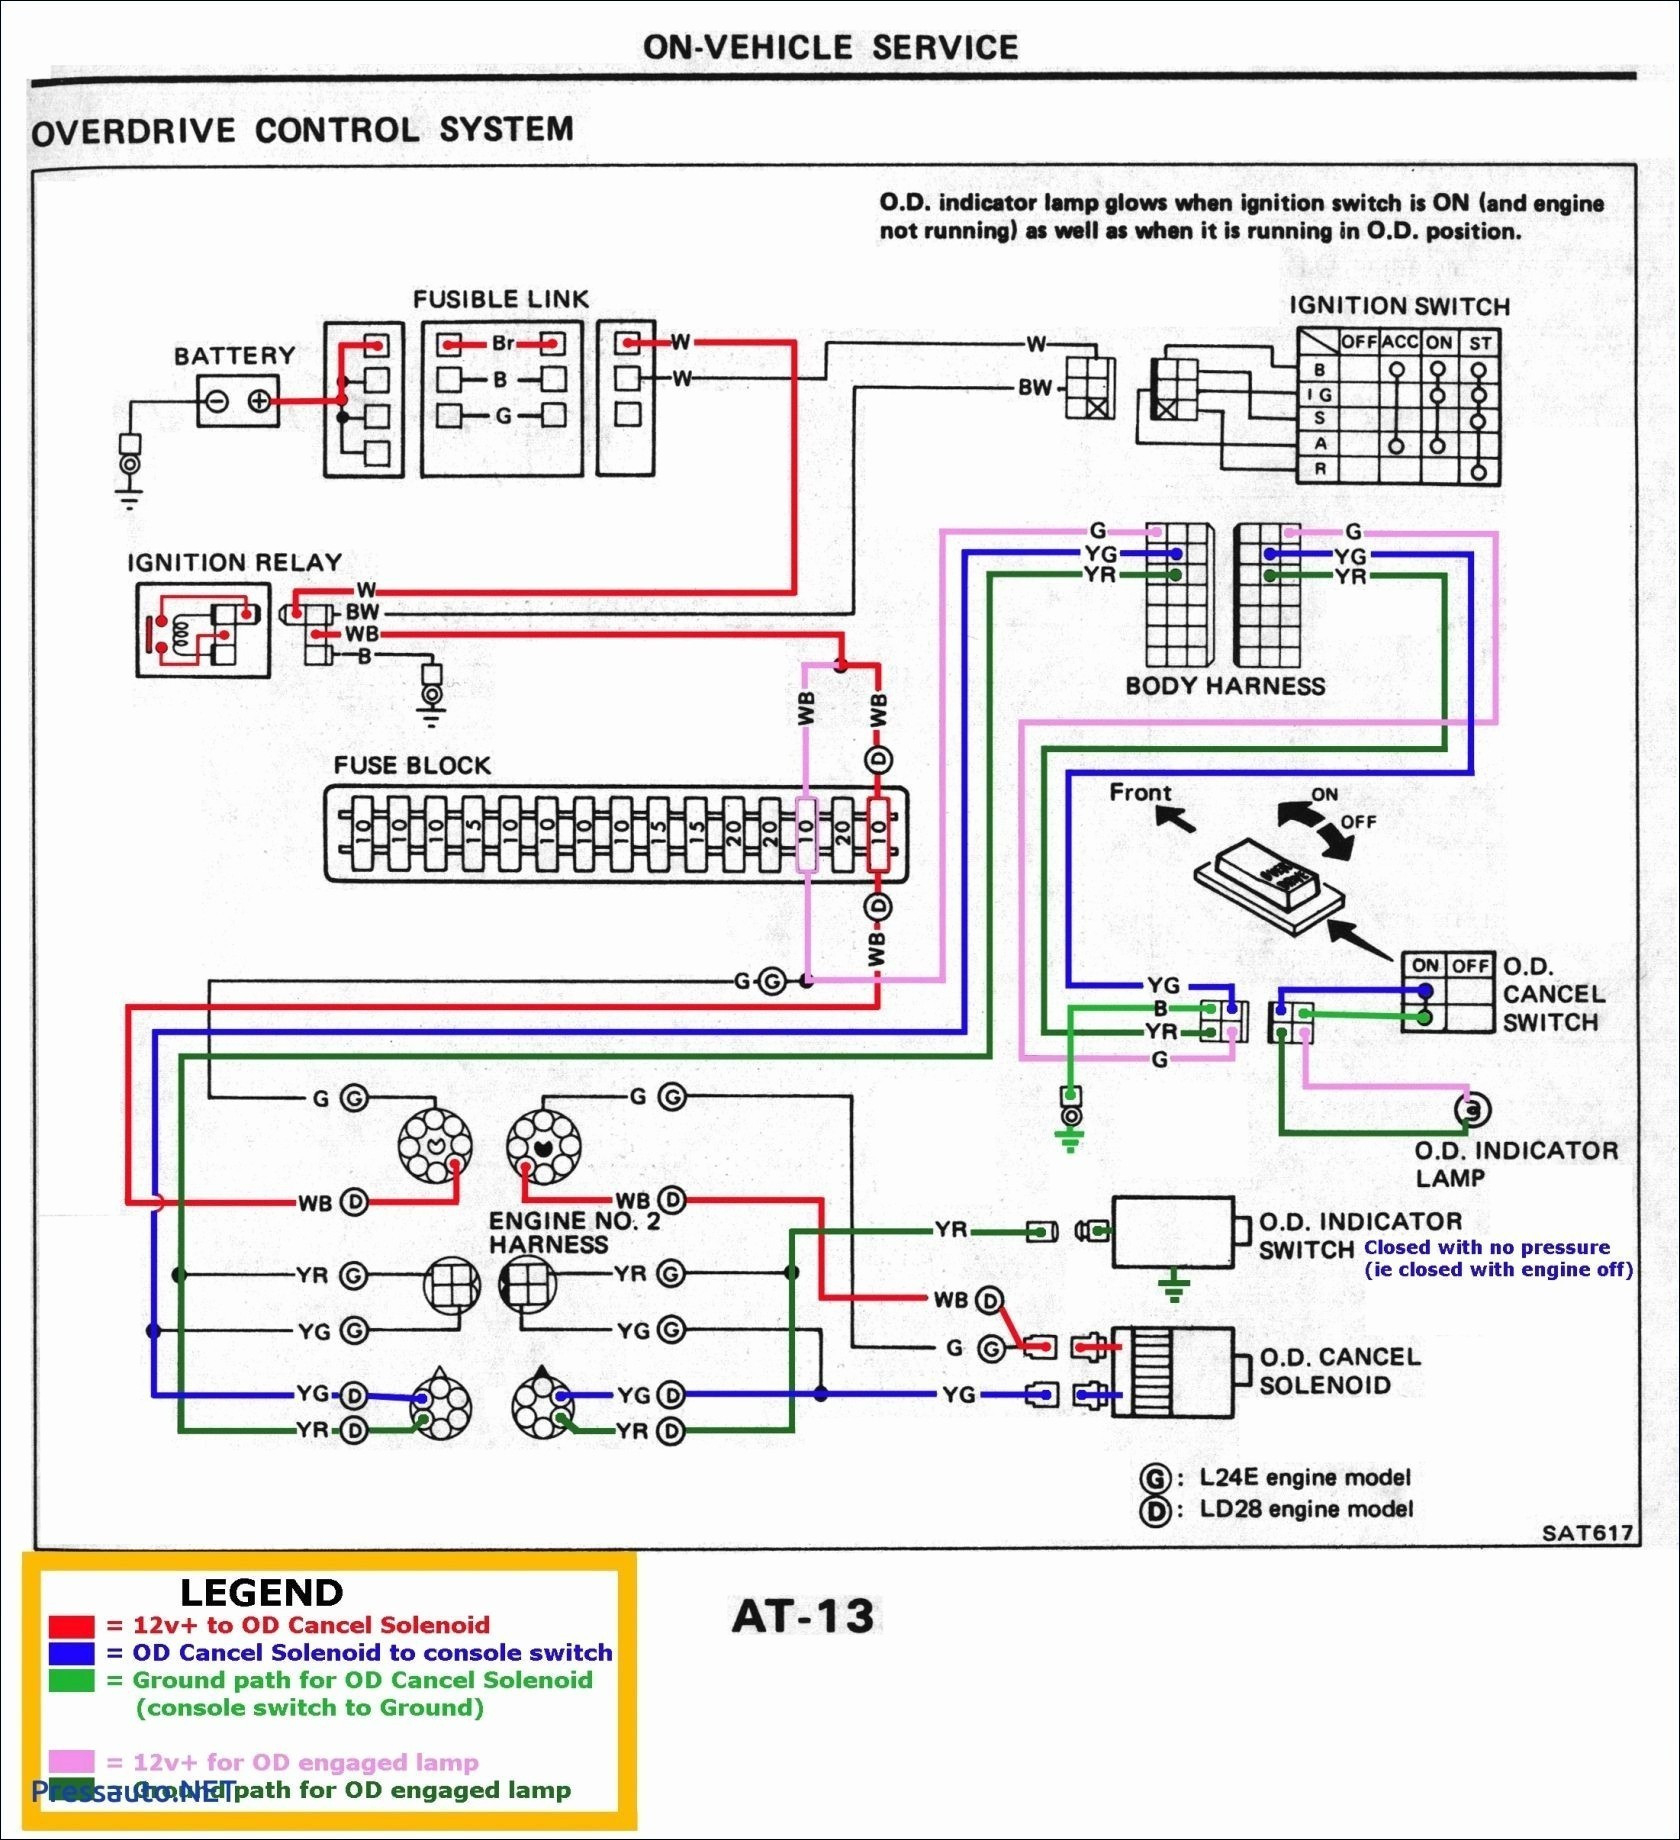 Cat 5 Wiring Diagram B Awesome Wiring Diagram For Cat5 Cable Best - Cat5 Wiring Diagram B